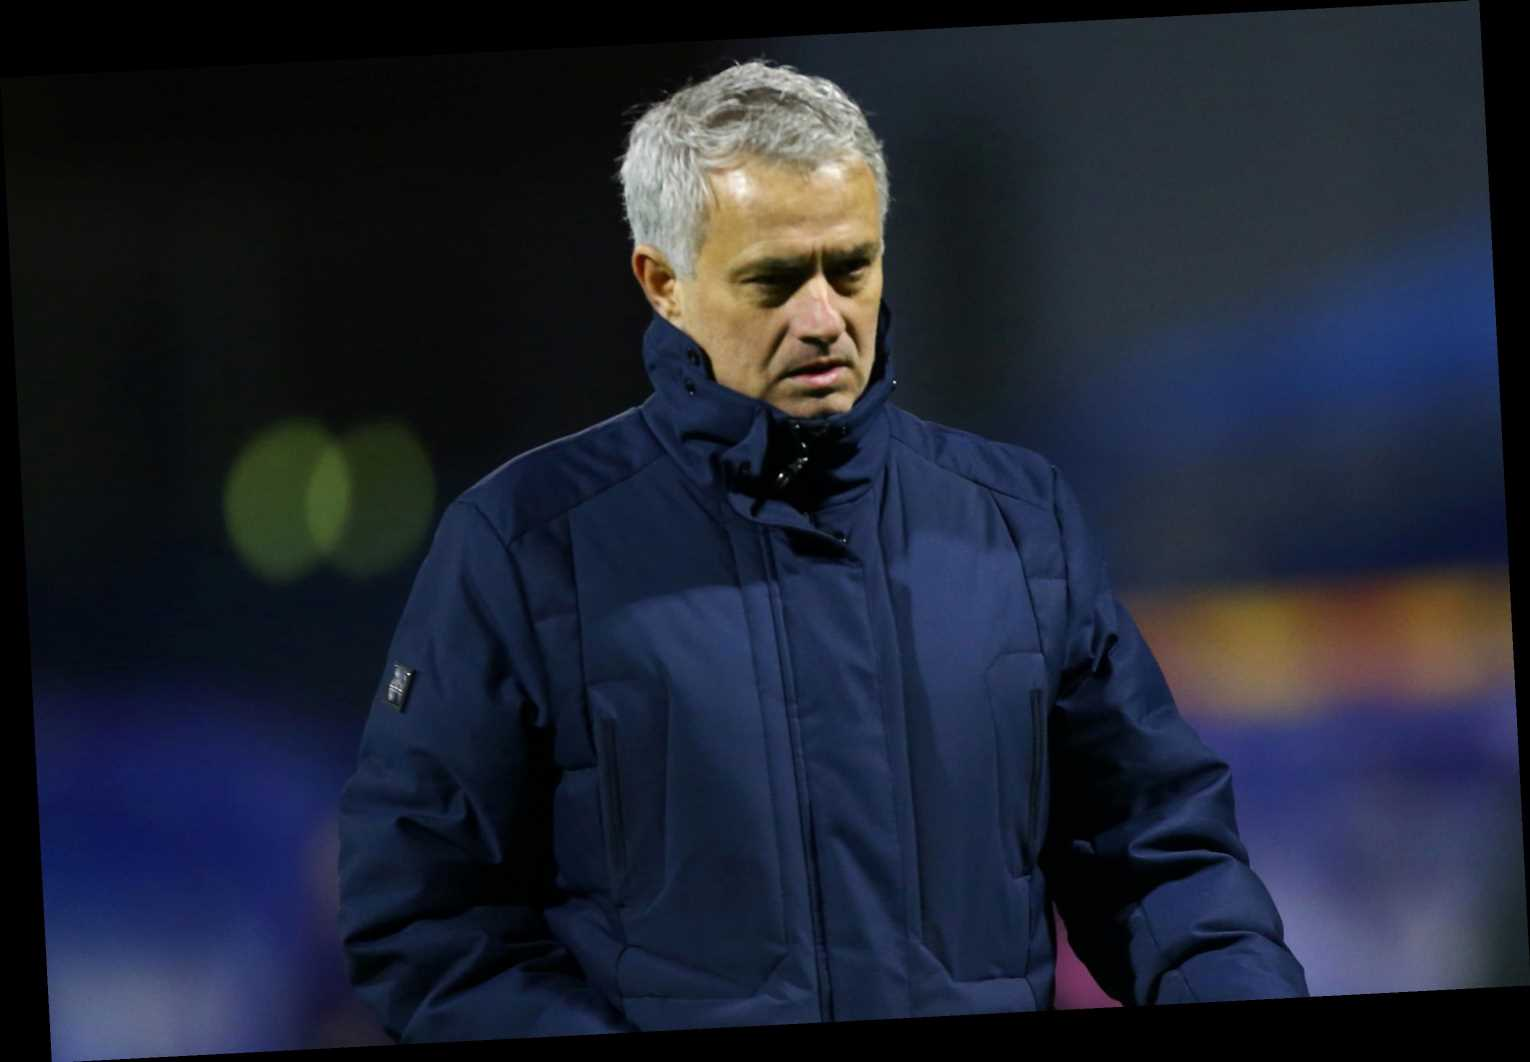 Jose Mourinho's words from last season come back to haunt him after Tottenham boss joked about quality of Europa League